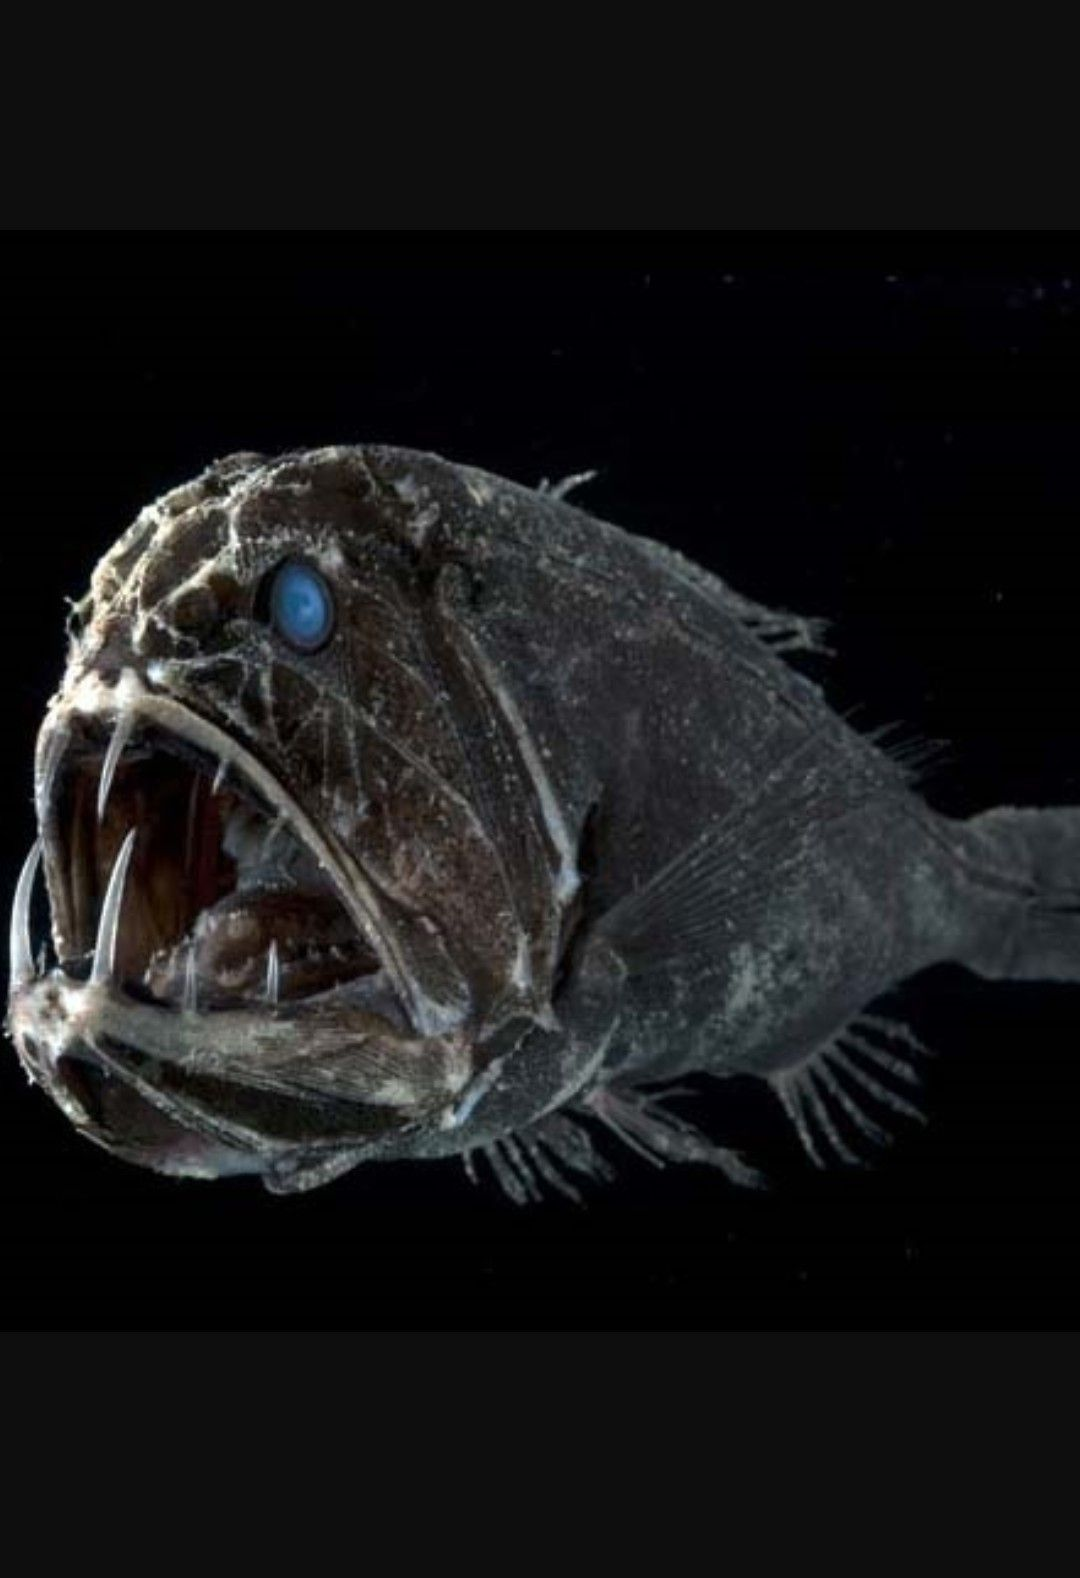 Most Terrifying Deep Sea Creatures List - In The Pitch Black Depths Of The  Ocean Where The Pressure Can Be D… | Deep sea creatures, Sea creatures art,  Sea creatures